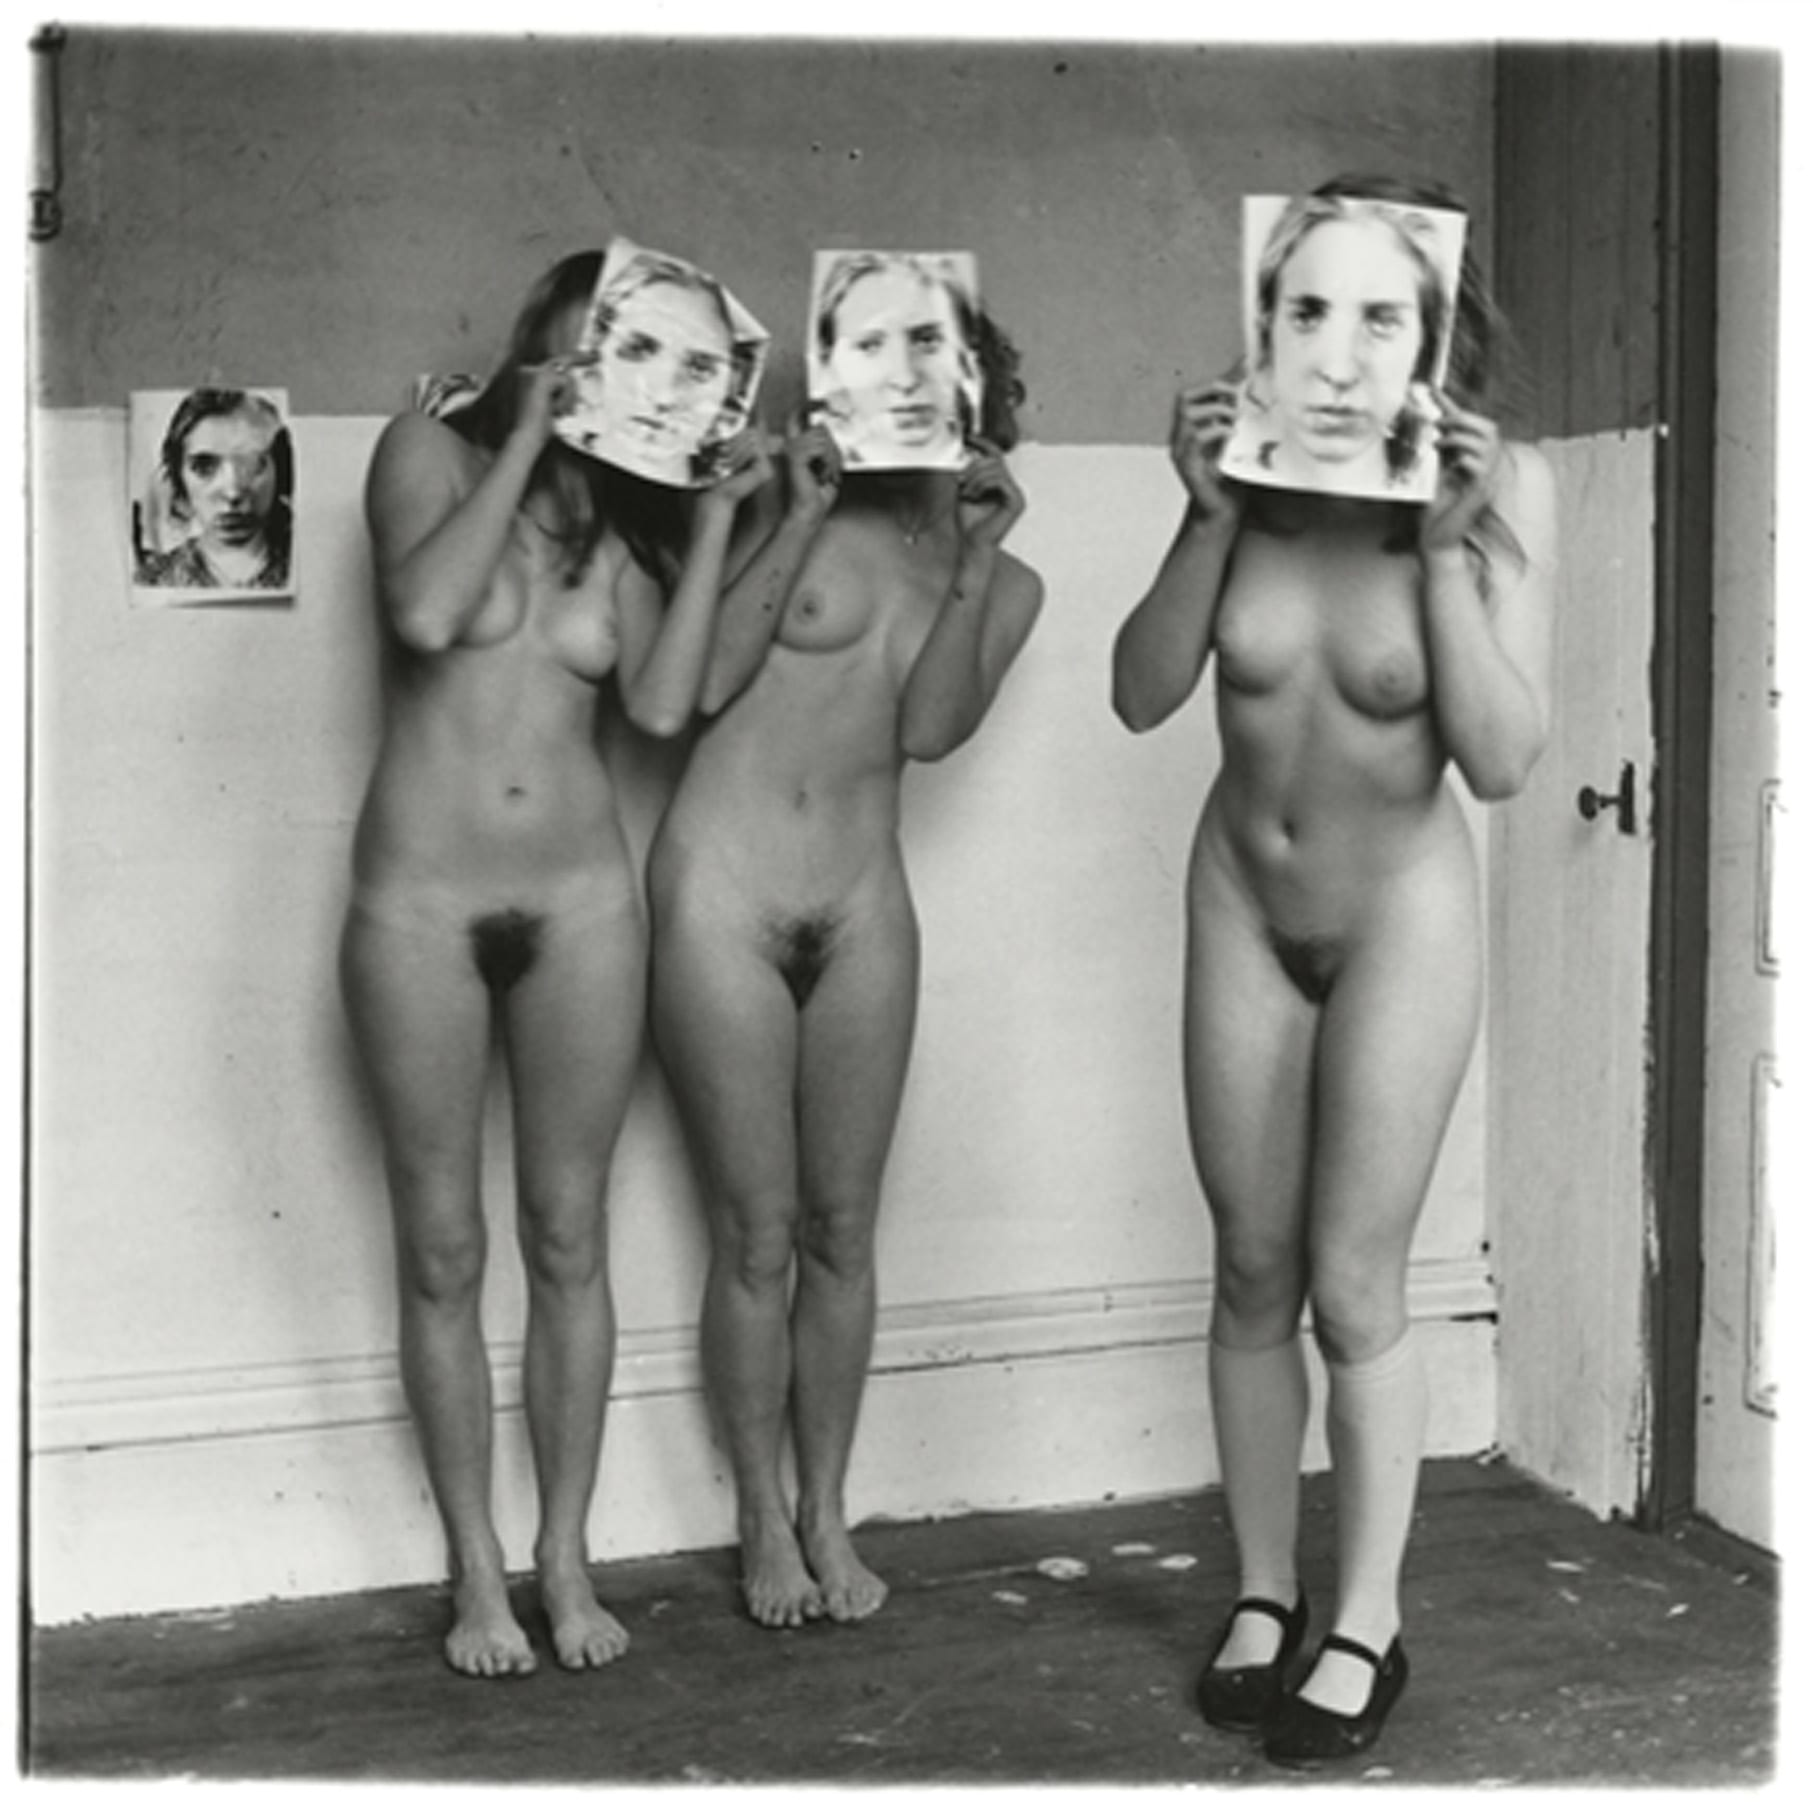 Francesca Woodman, About Being My Model, Providence, Rhode Island, 1976 © George and Betty Woodman NB: No toning, cropping, enlarging, or overprinting with text allowed.